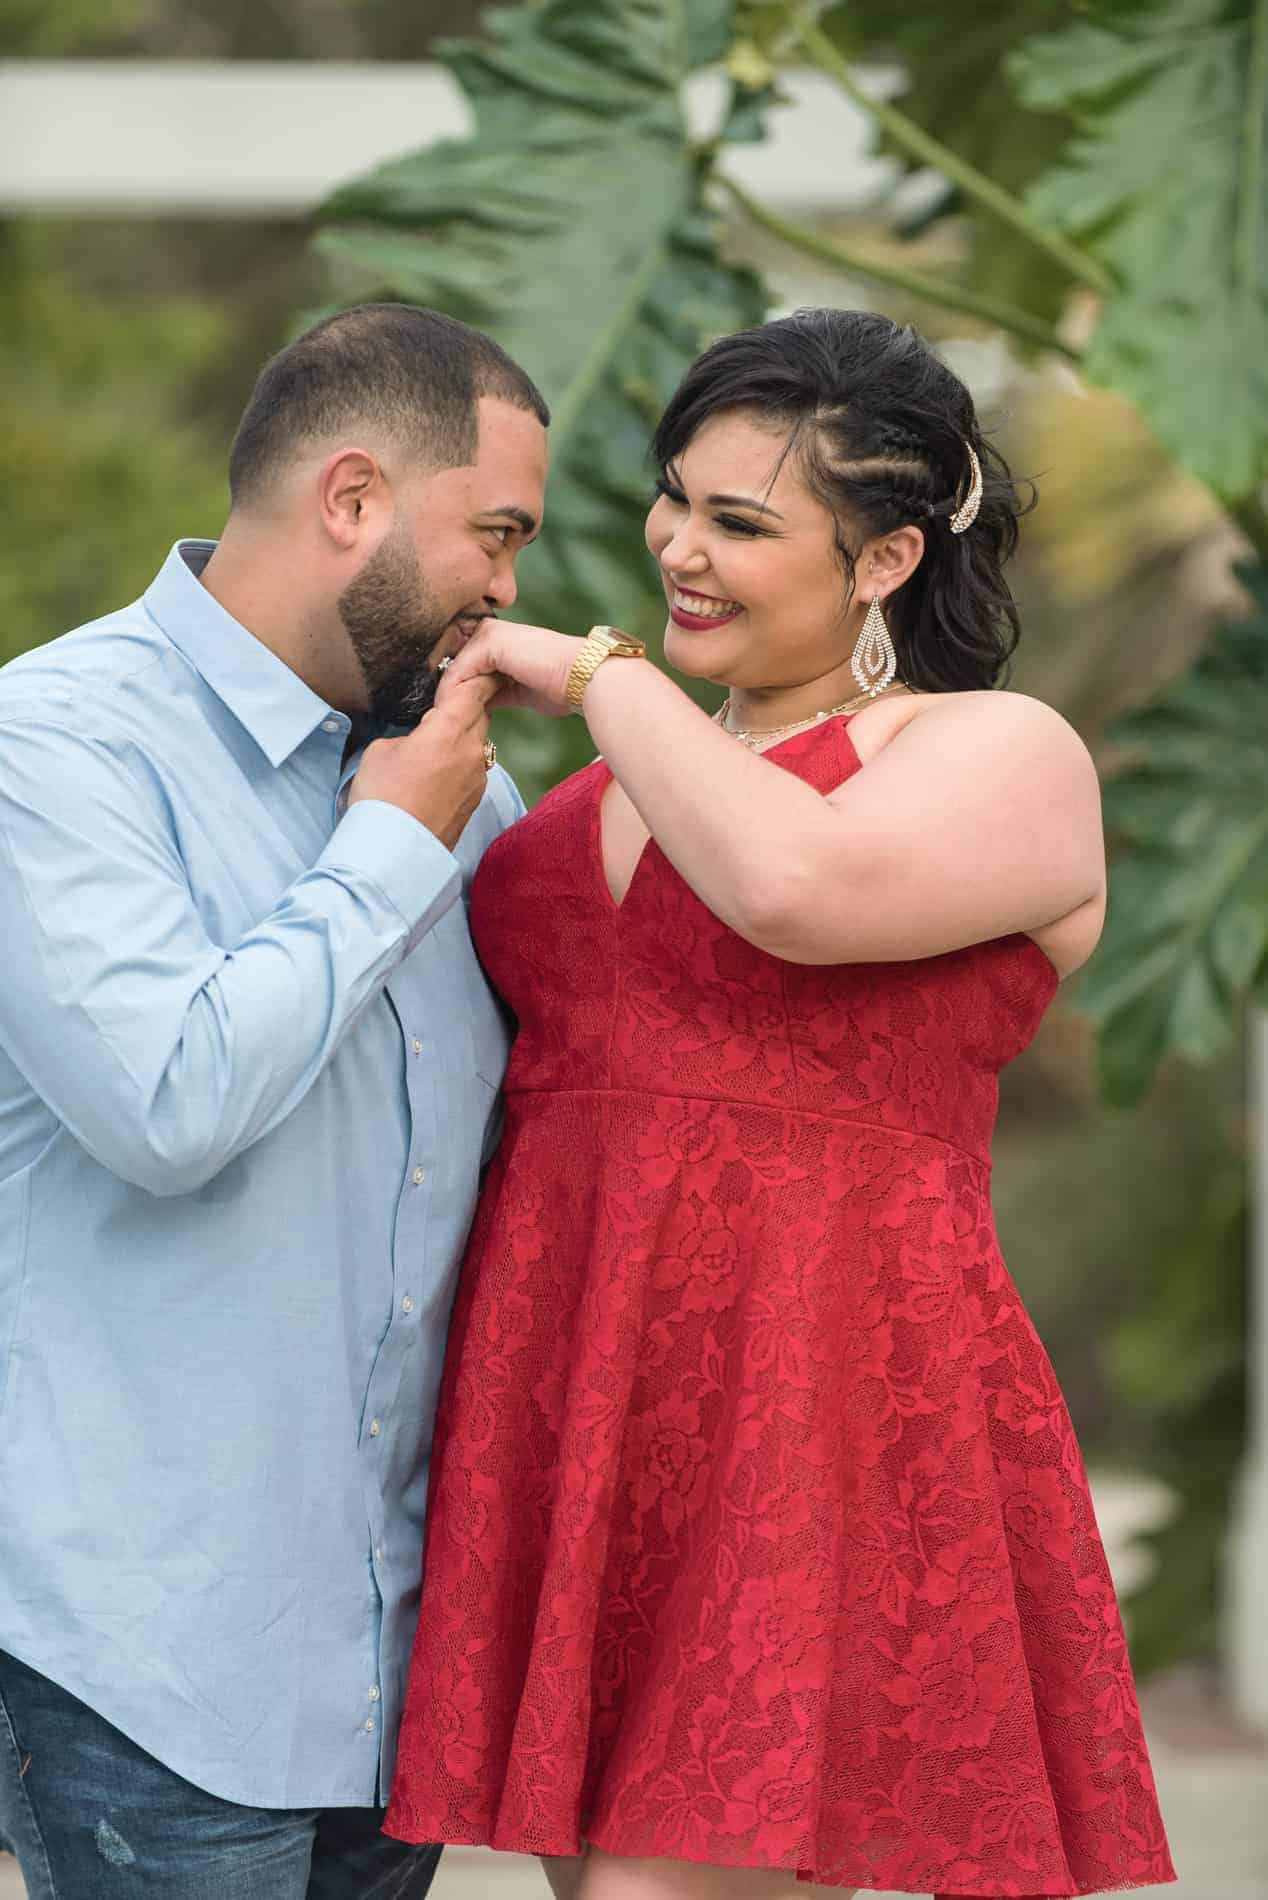 Top Photographers for Leu Gardens Engagement Photos